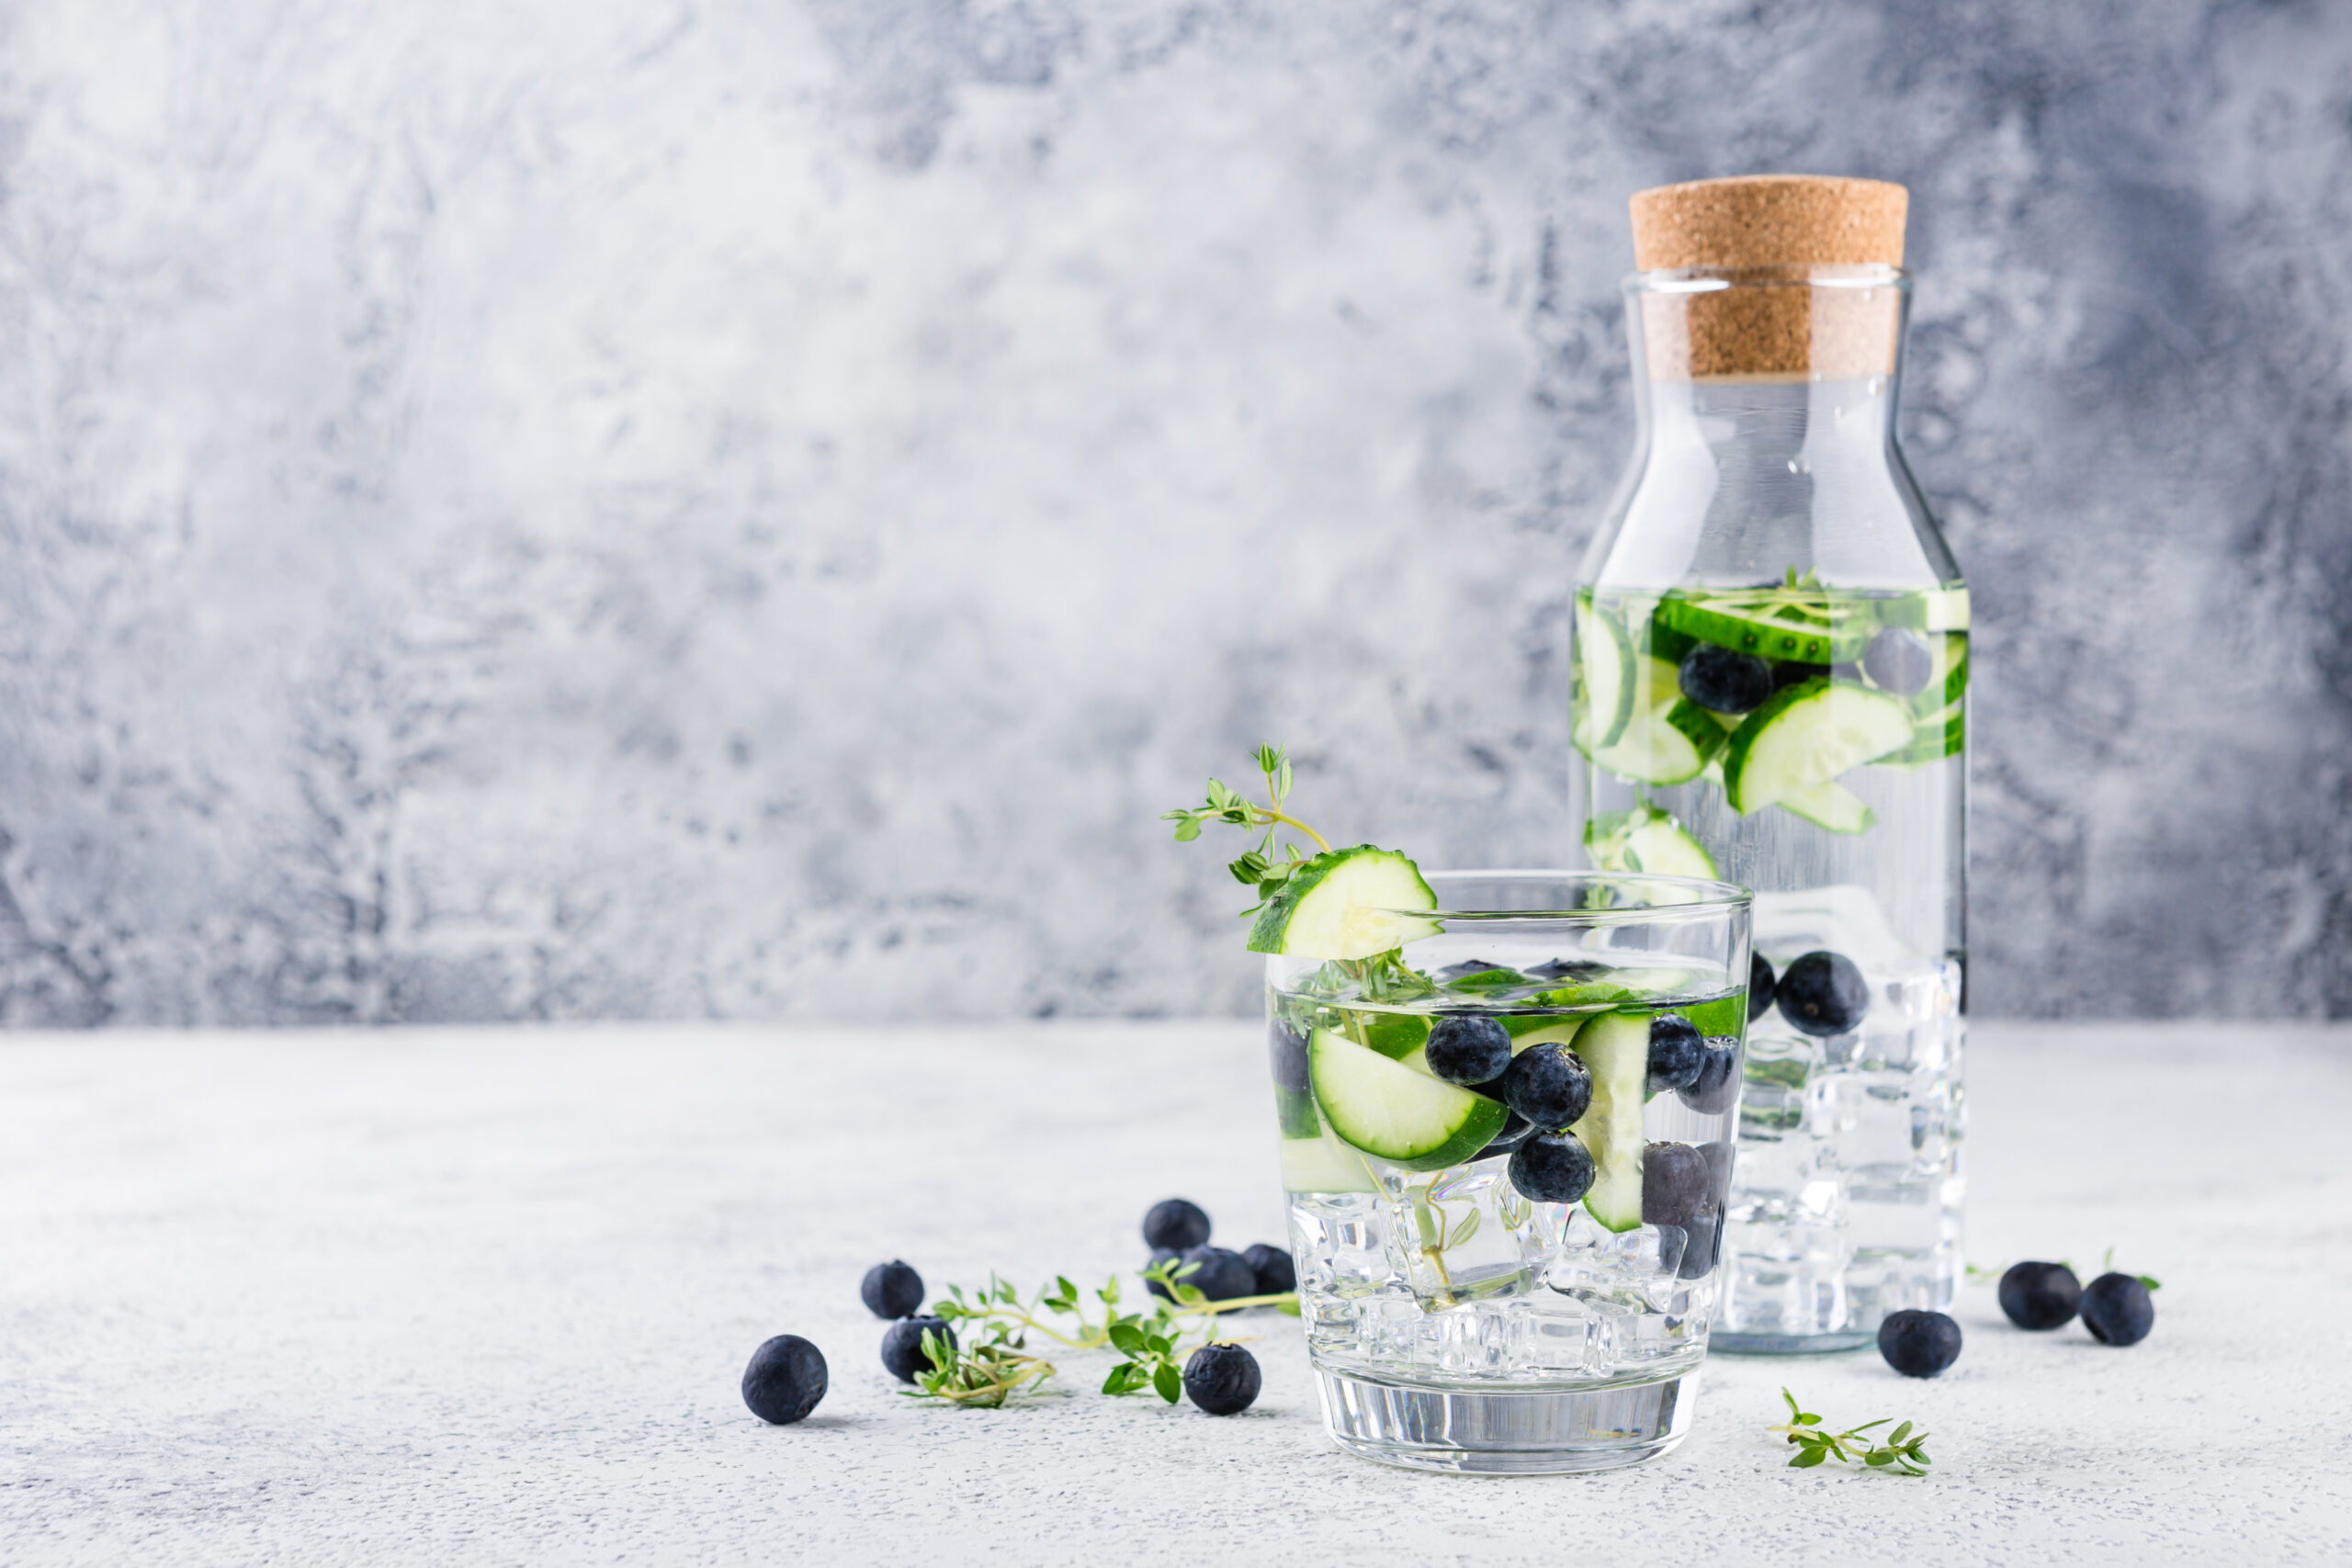 Detox,Infused,Flavored,Water,With,Blueberry,,Cucumber,And,Thyme,On